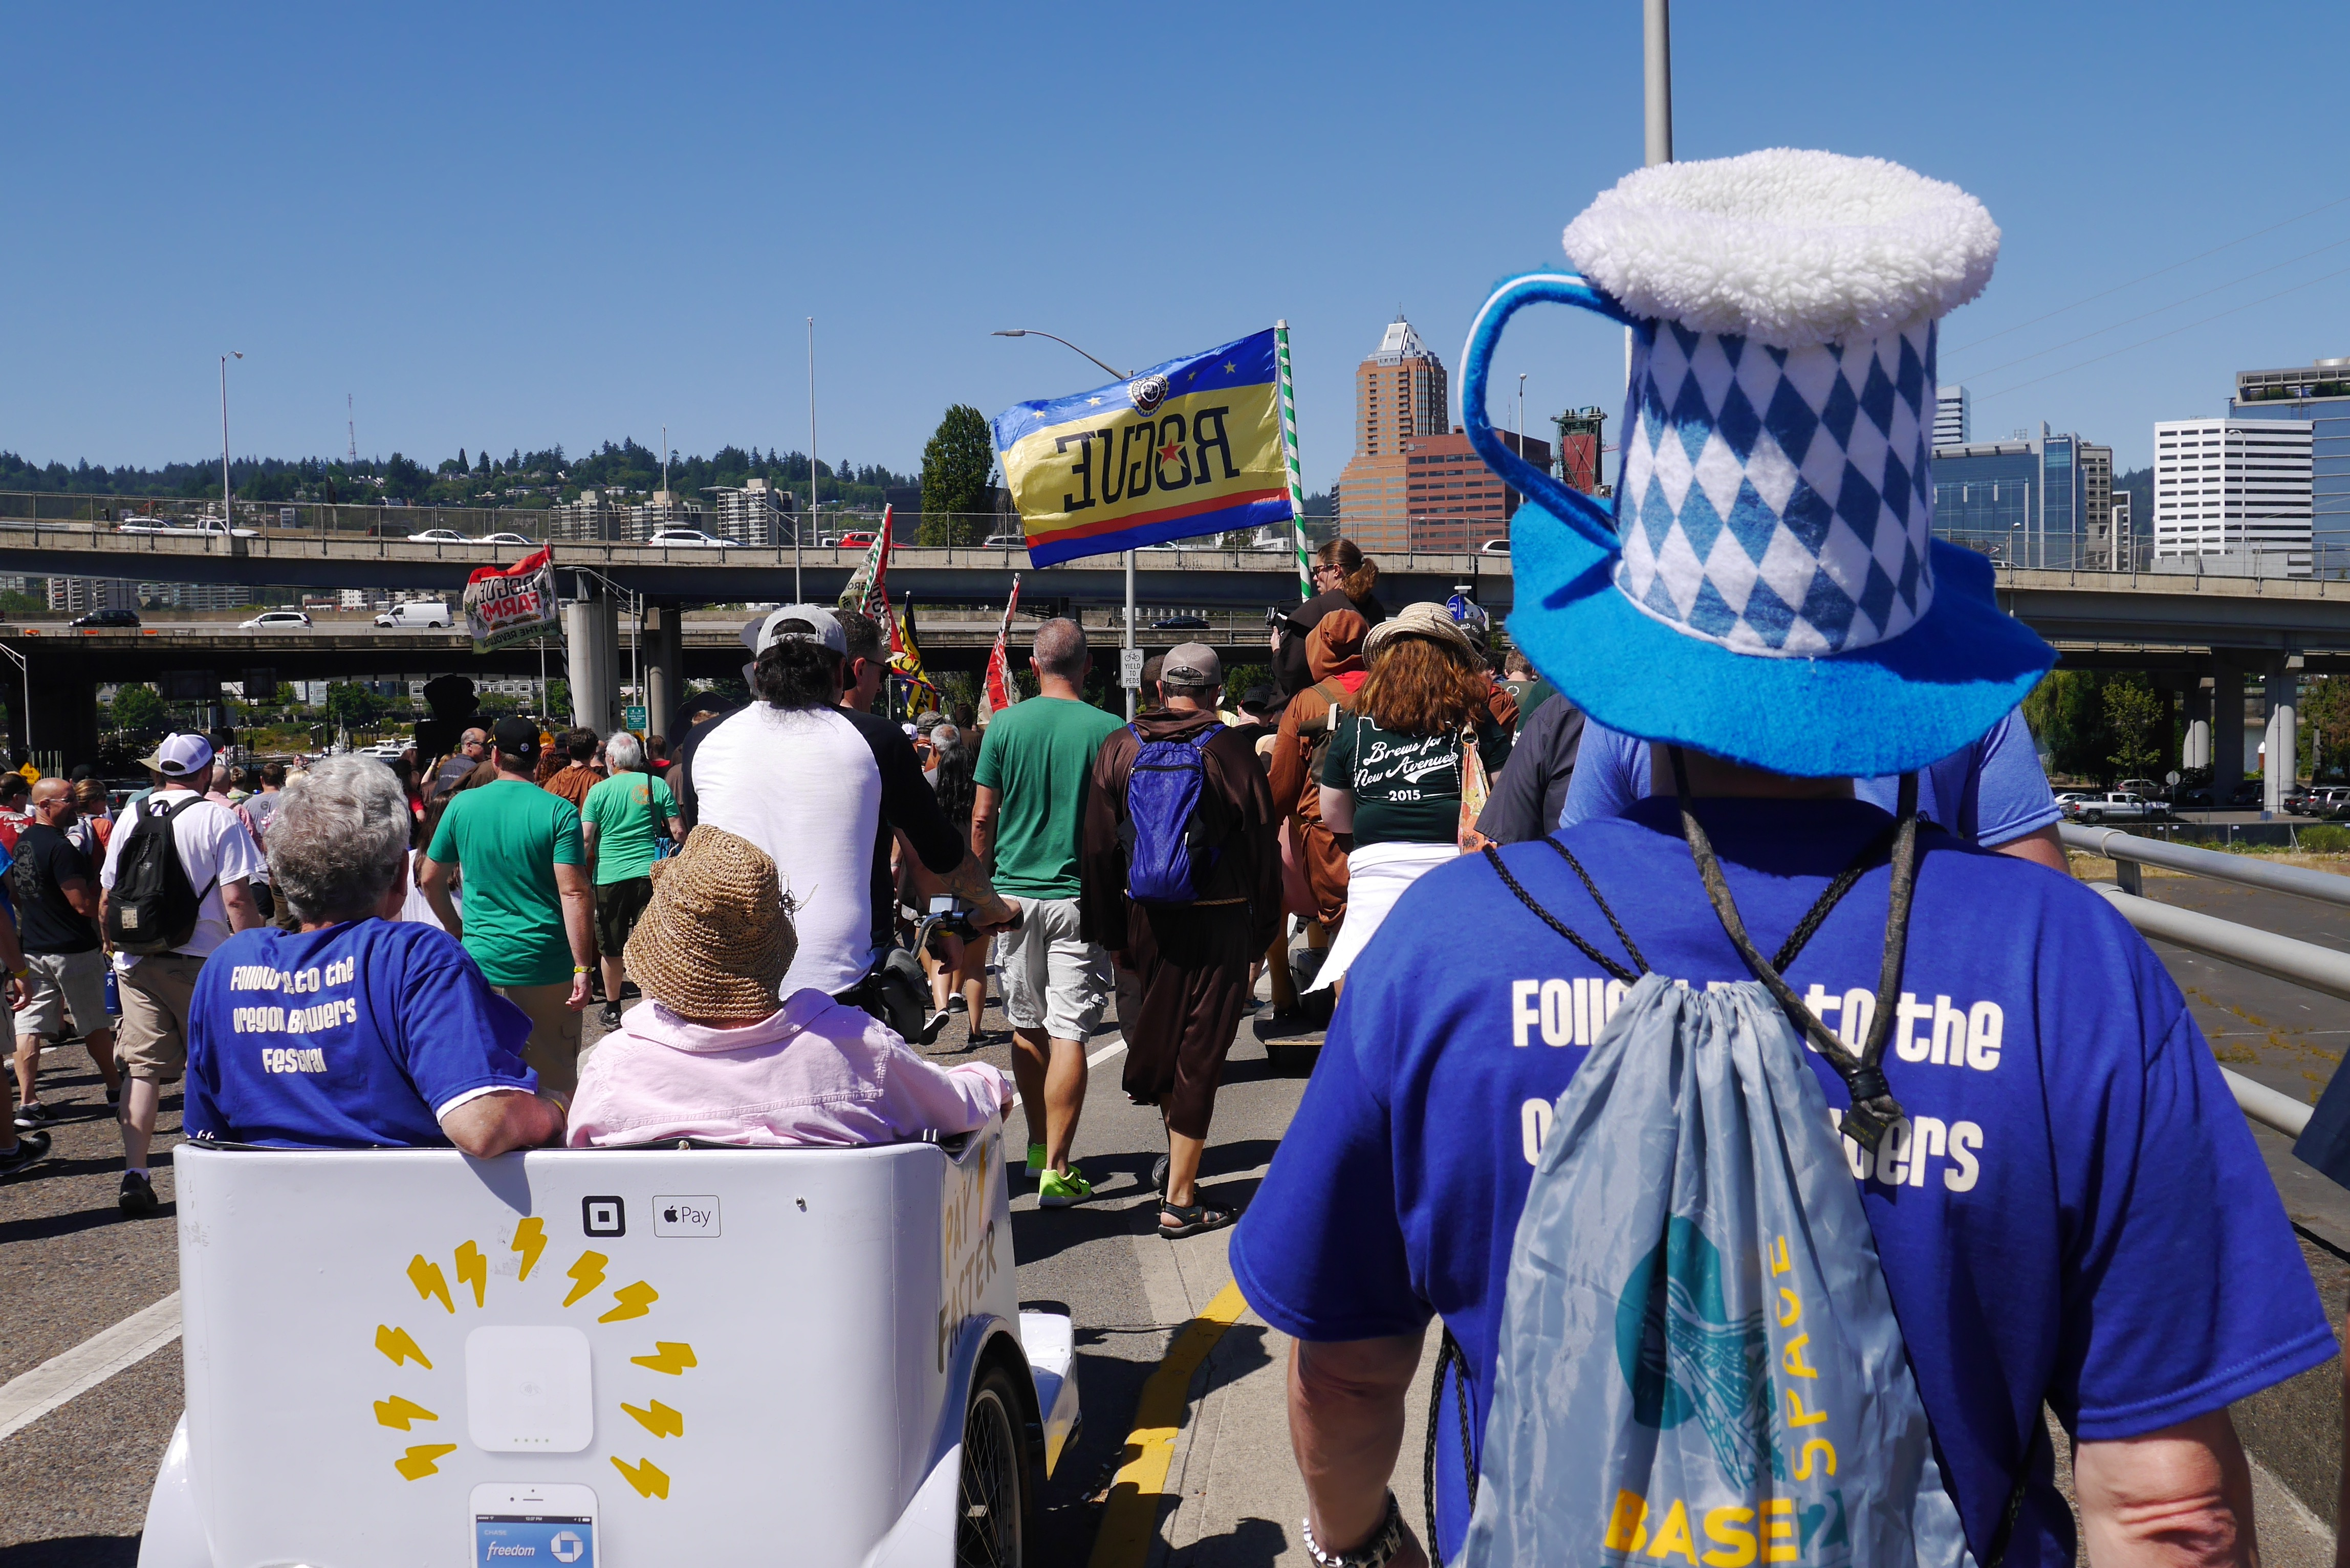 The Oregon Brewers Festival Parade marches on over the Hawthorne Bridge. (photo by Cat Stelzer)